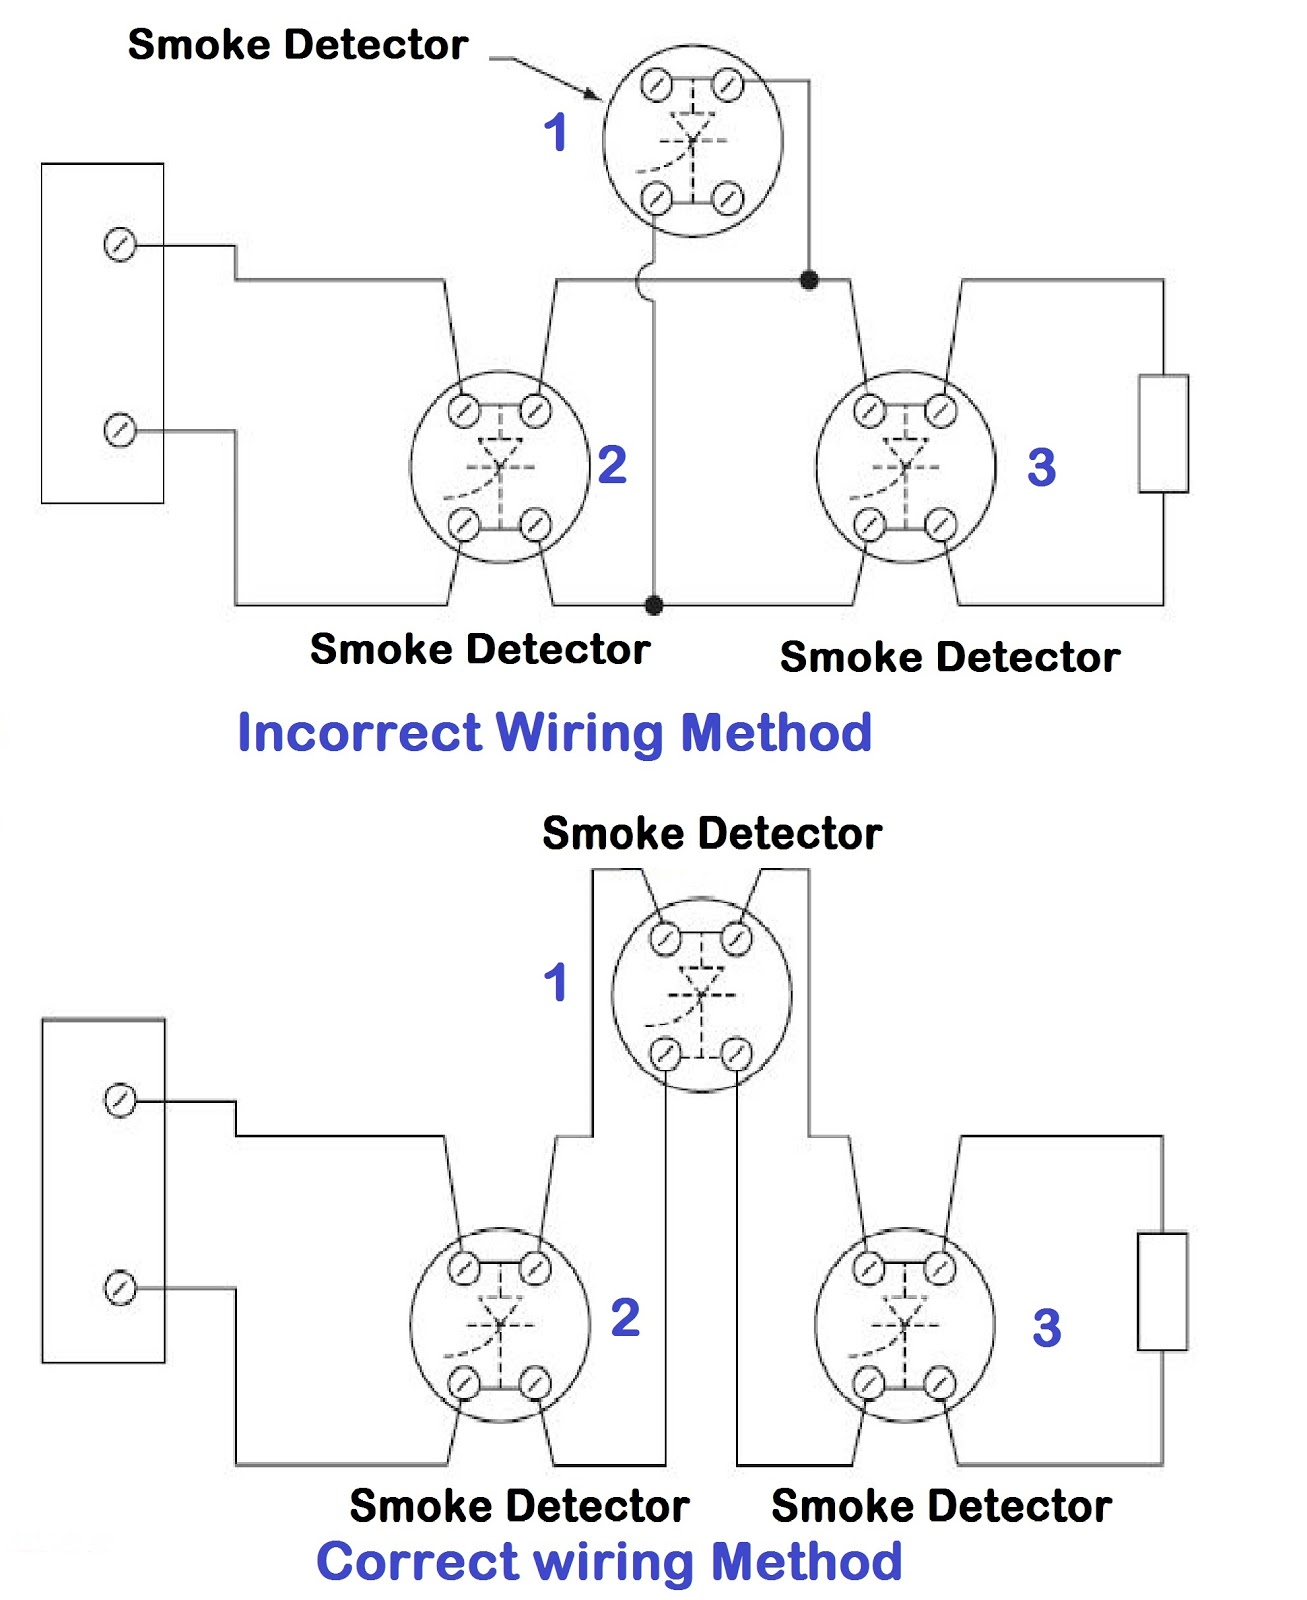 hight resolution of smoke detector wiring technique in cottect way